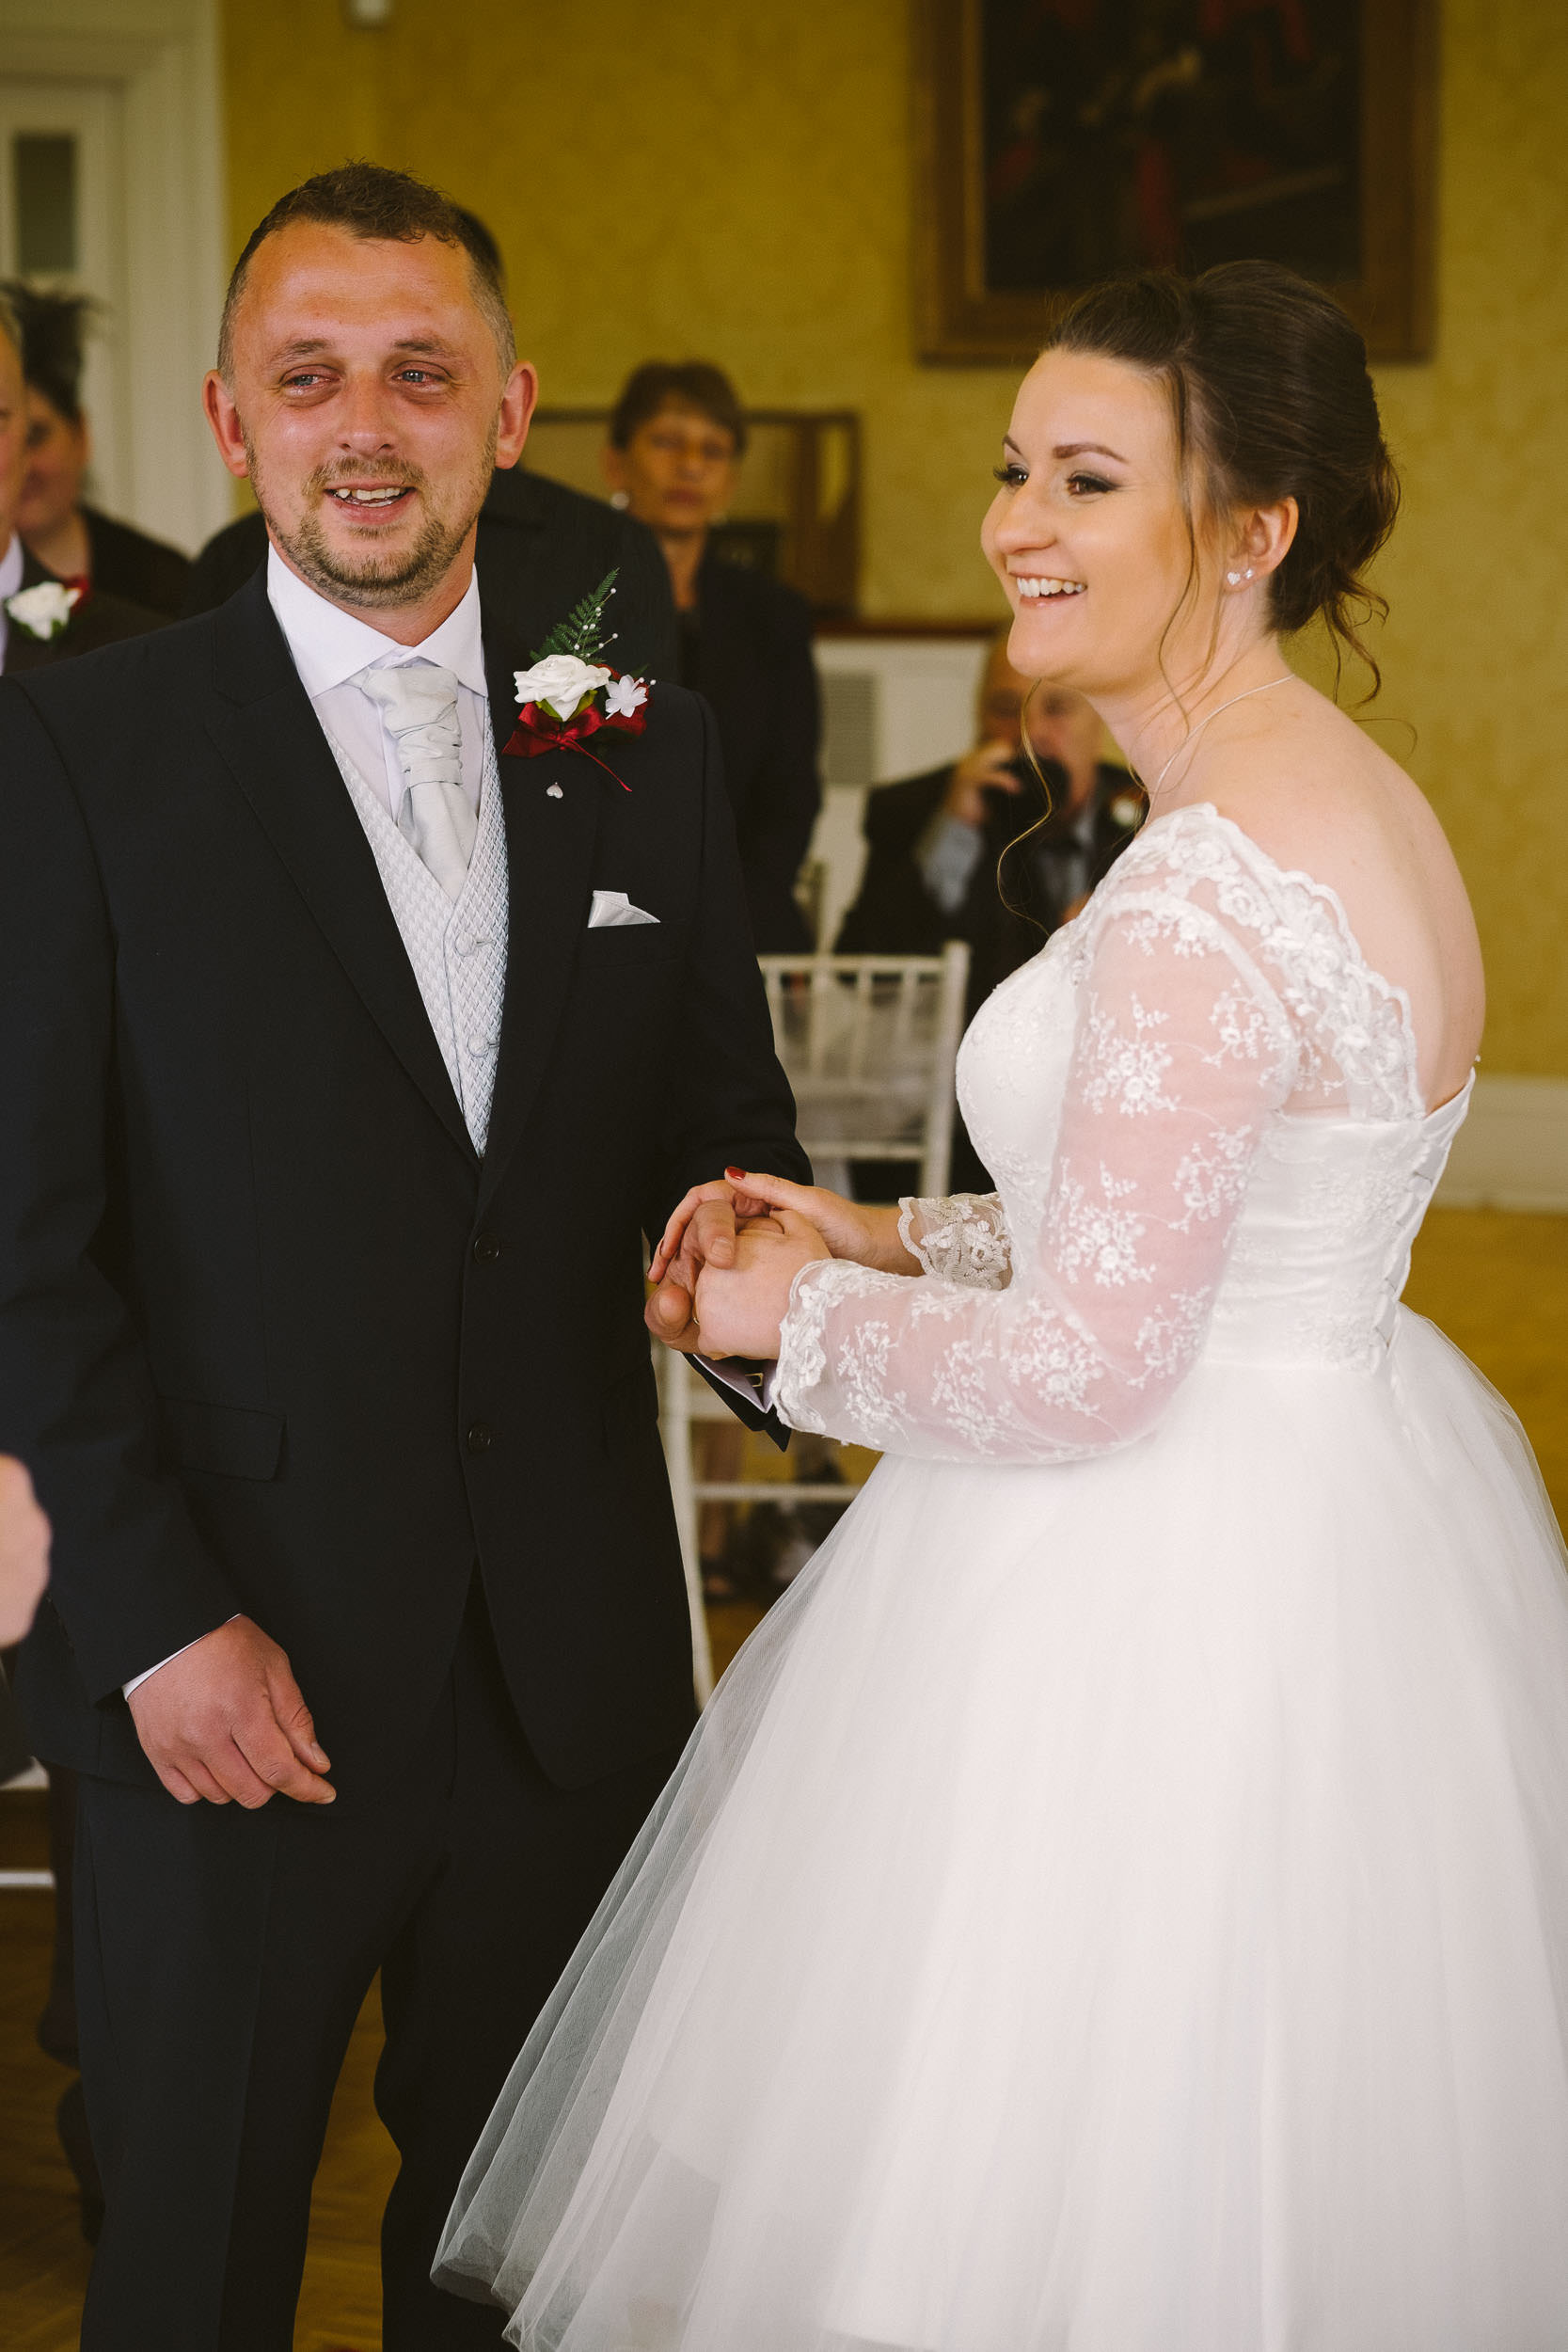 Bride laughing and groom emotional during wedding ceremony